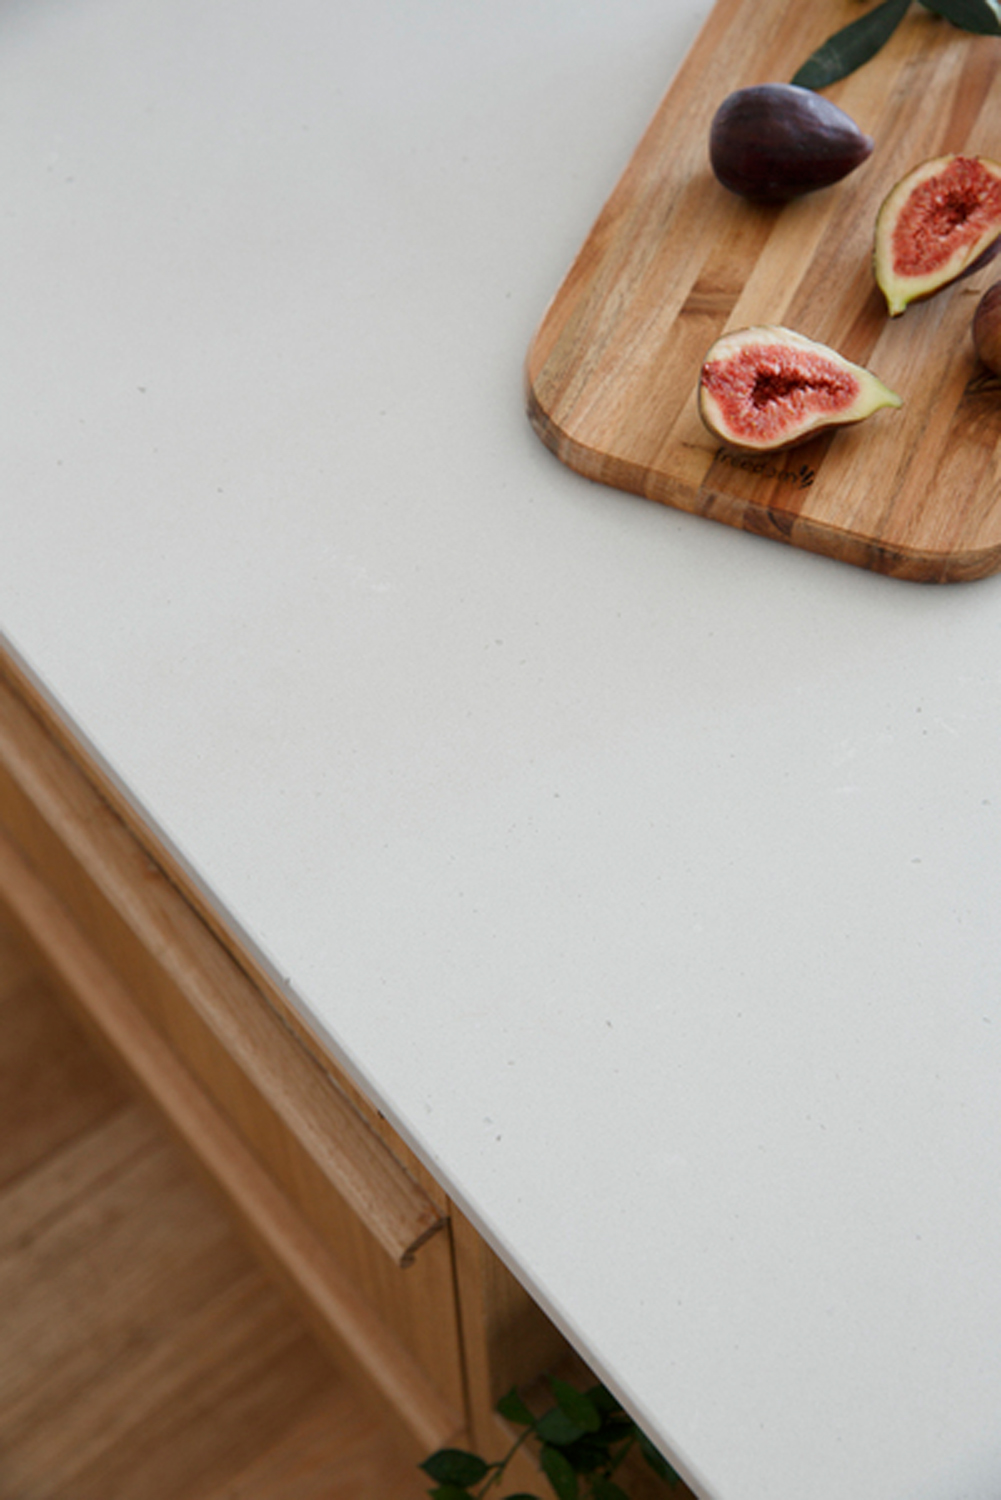 3. Benchtops as art -freshconcrete